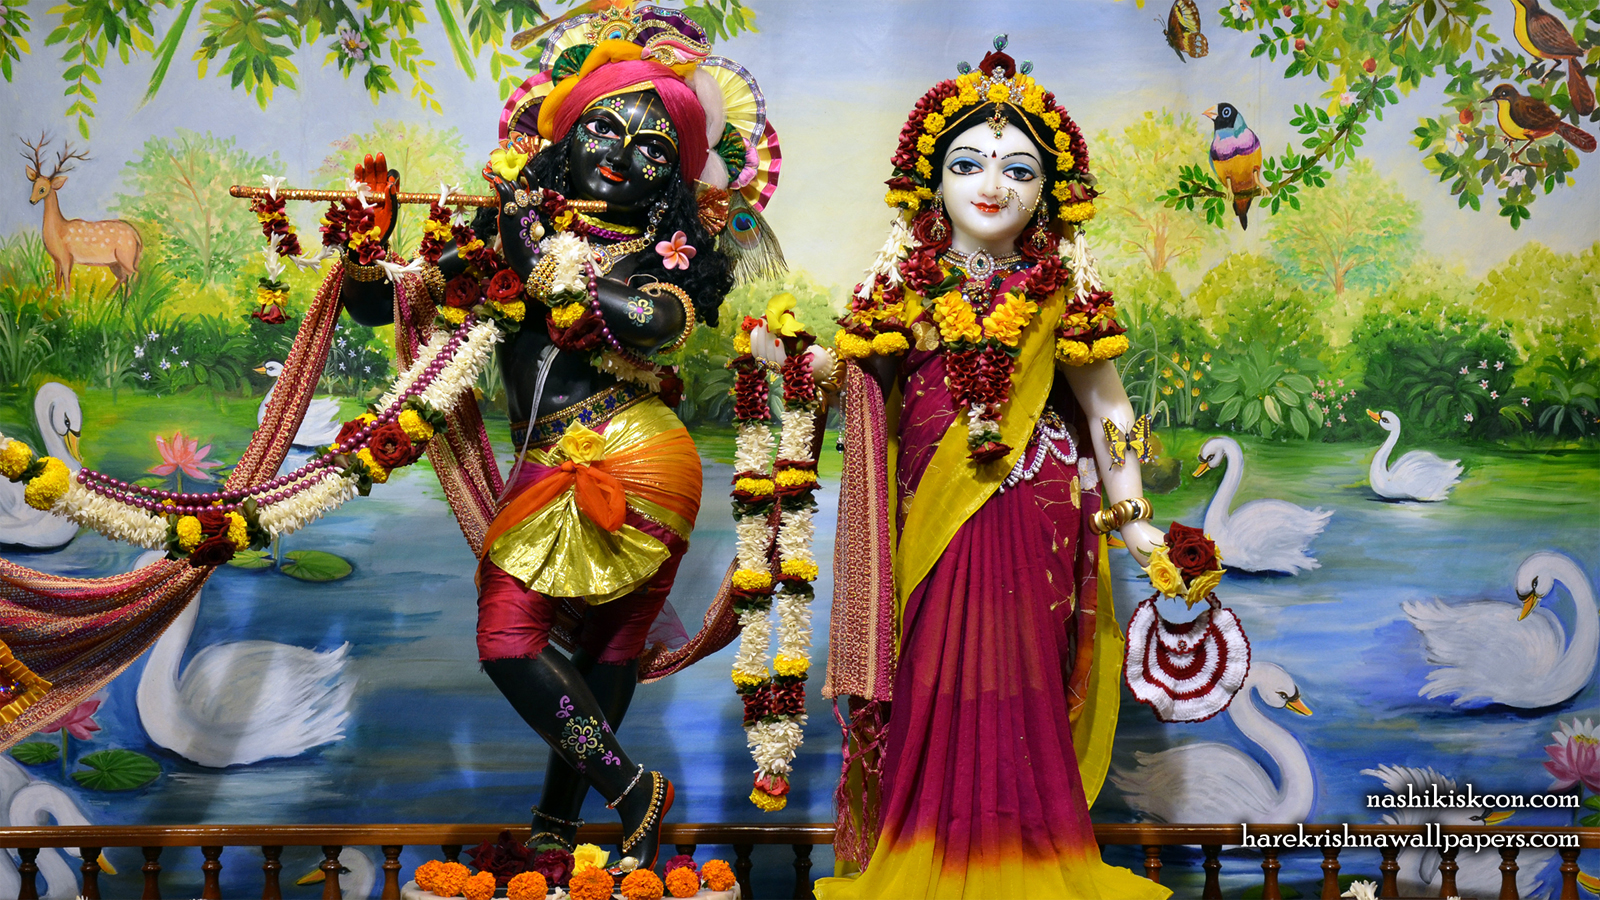 Sri Sri Radha Madan Gopal Wallpaper (008) Size 1600x900 Download